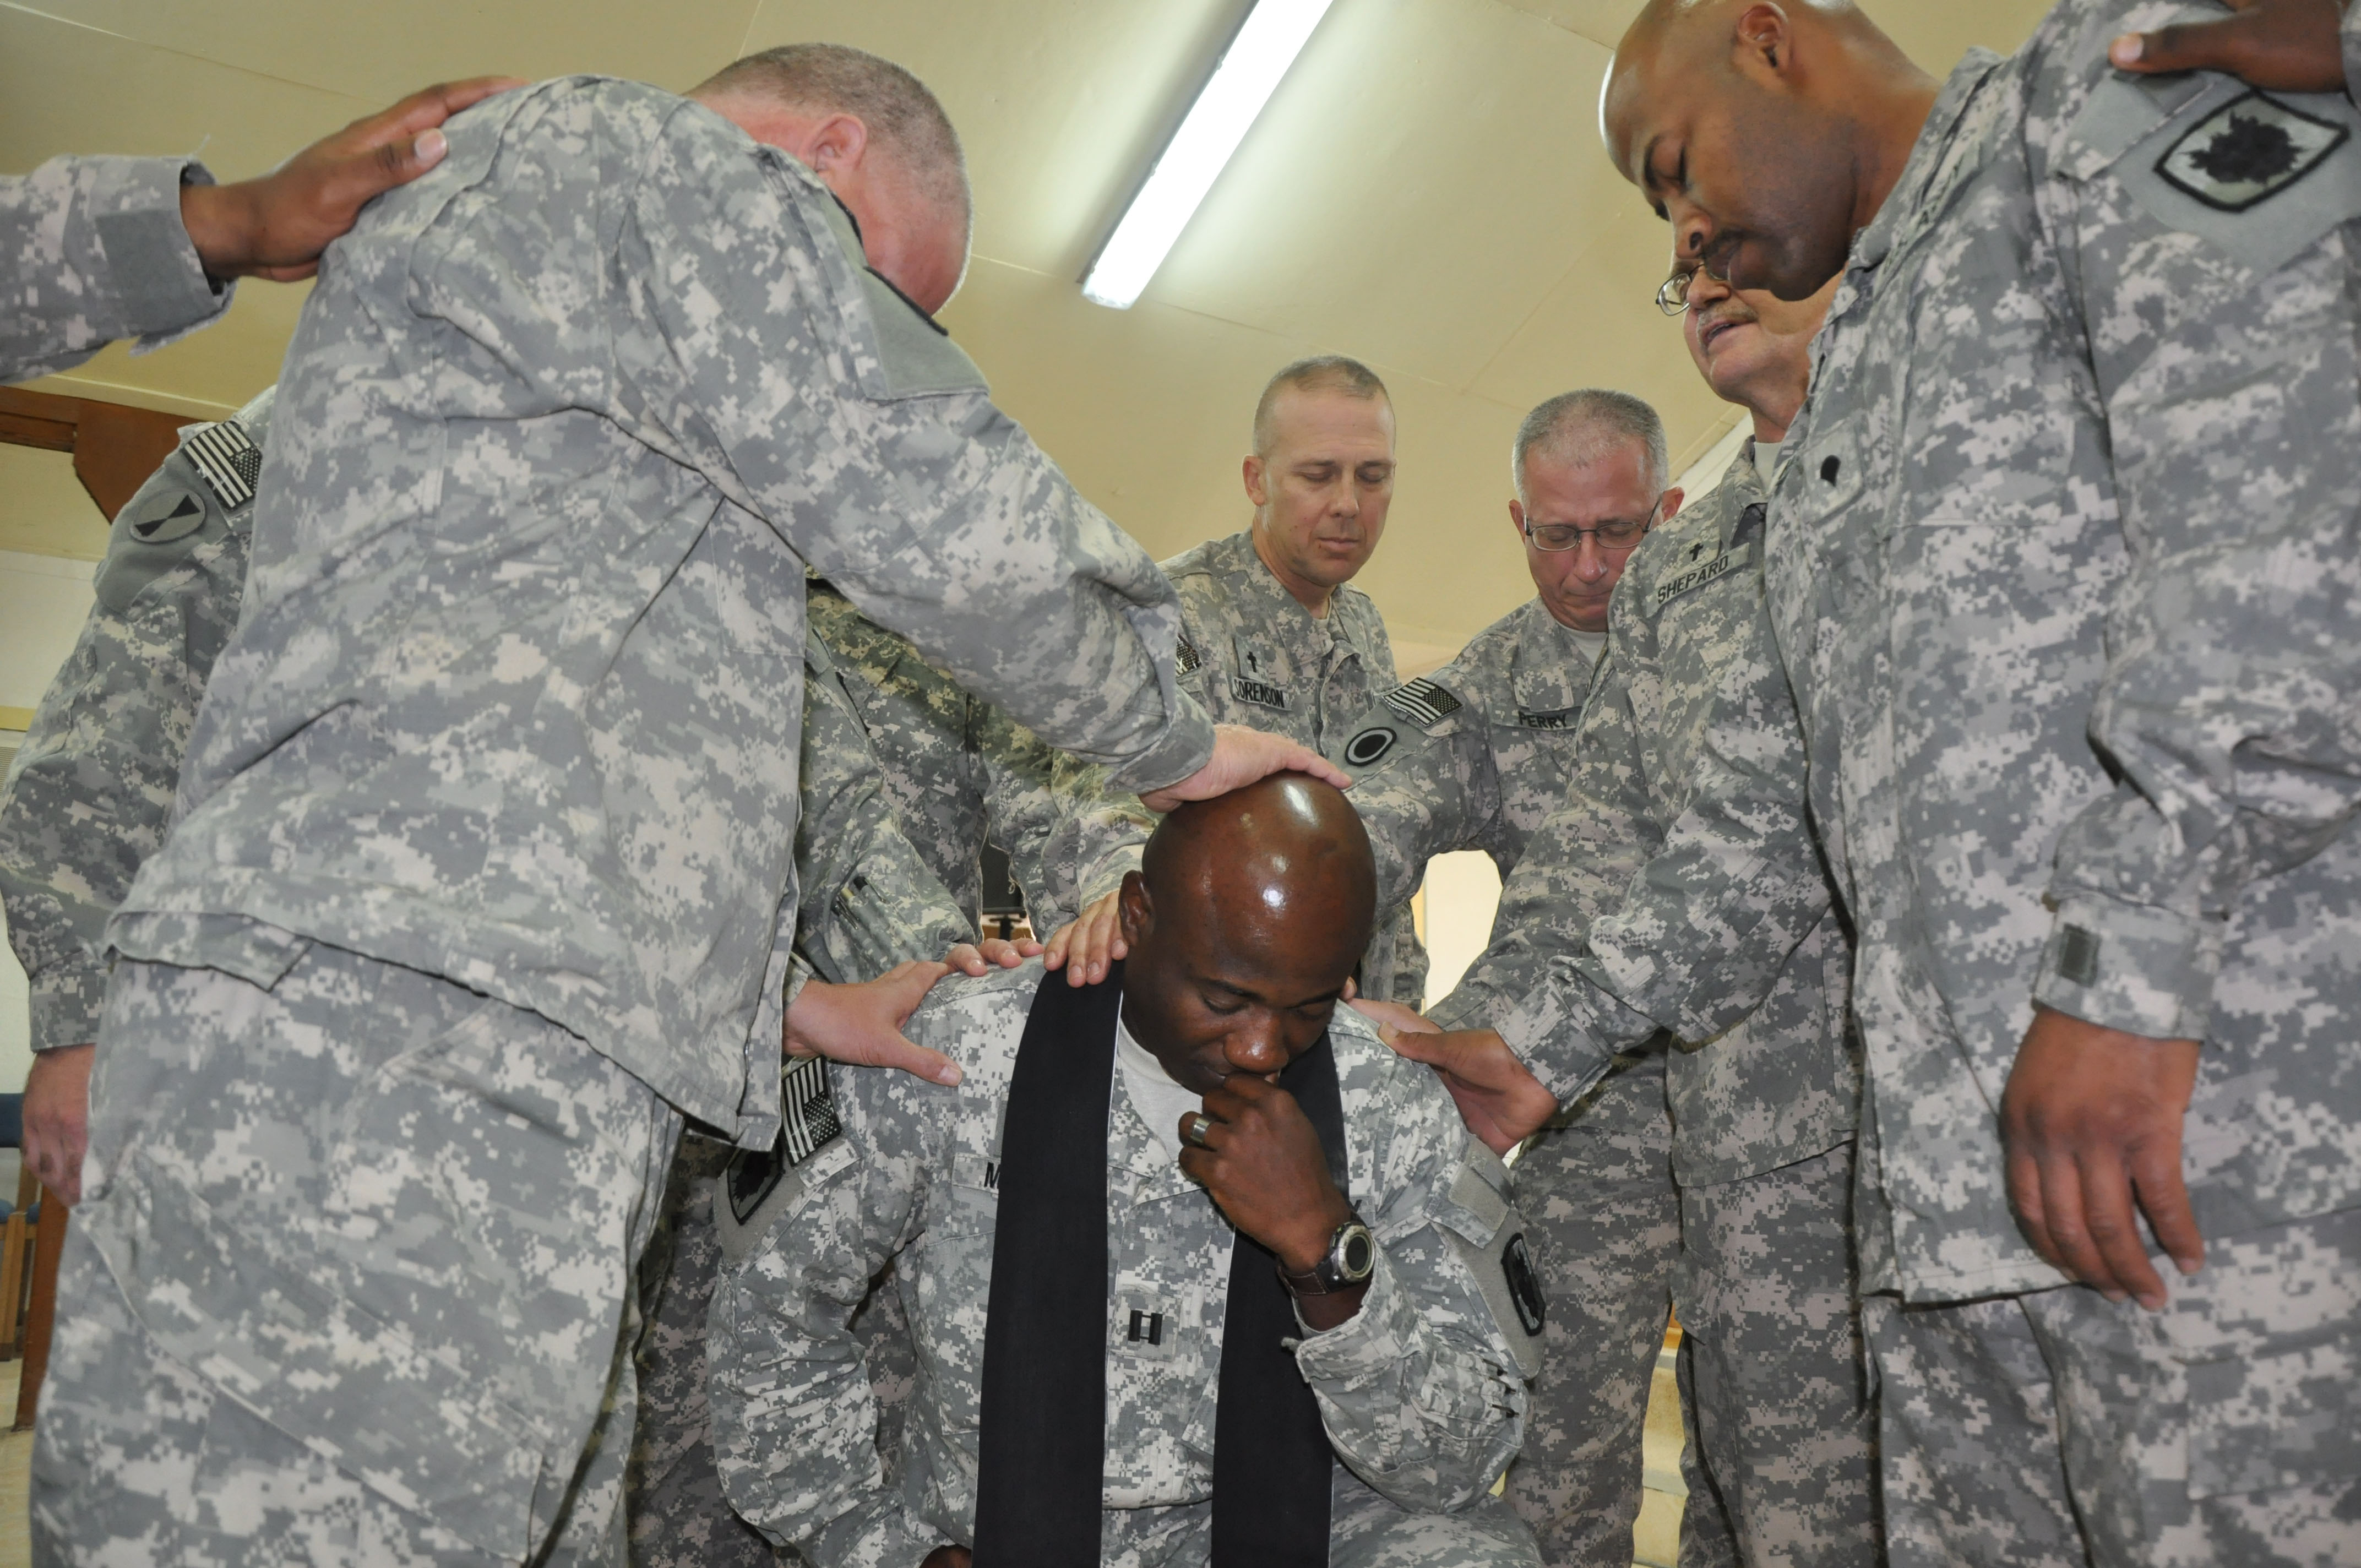 File:US Army 52339 Chaplain answers call of duty jpg